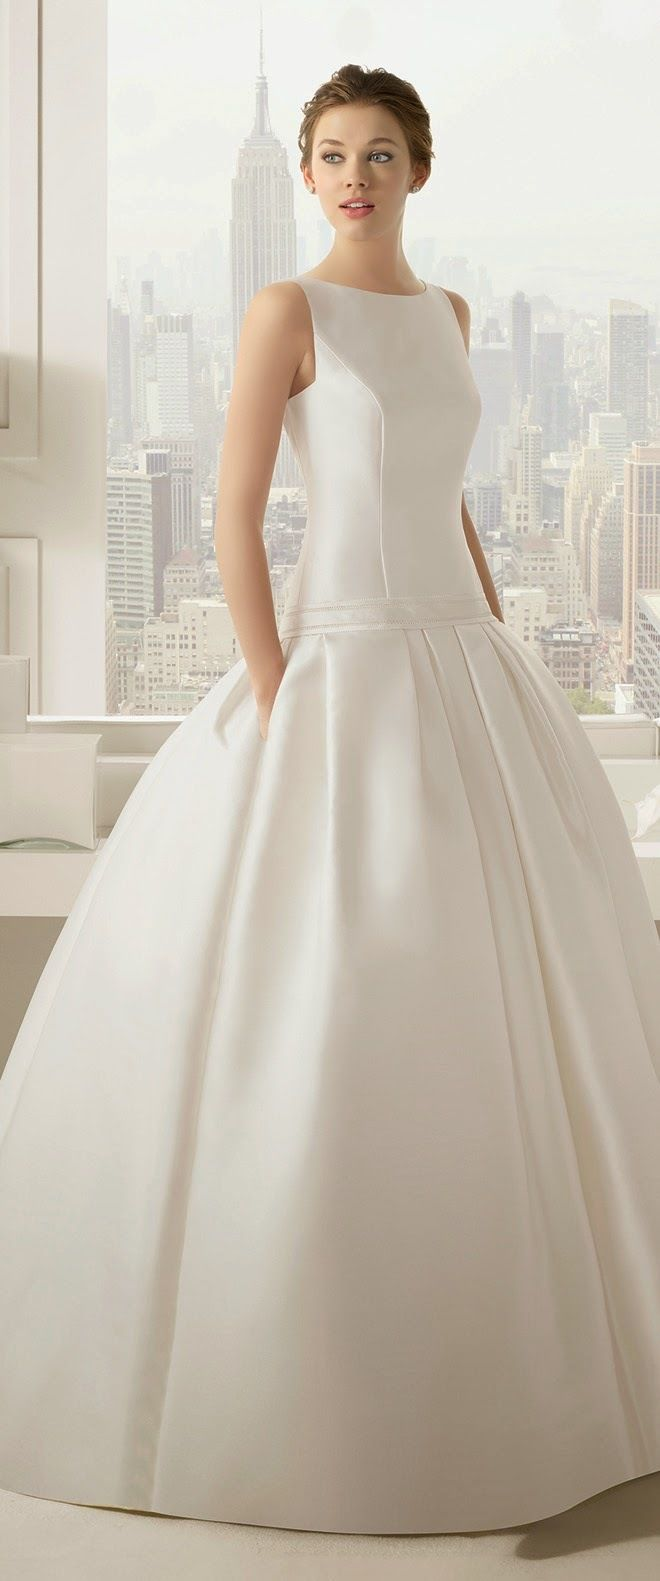 Vera wang wedding dresses 2015 rosa clara 2015 vera wang bridal vera wang wedding dresses 2015 junglespirit